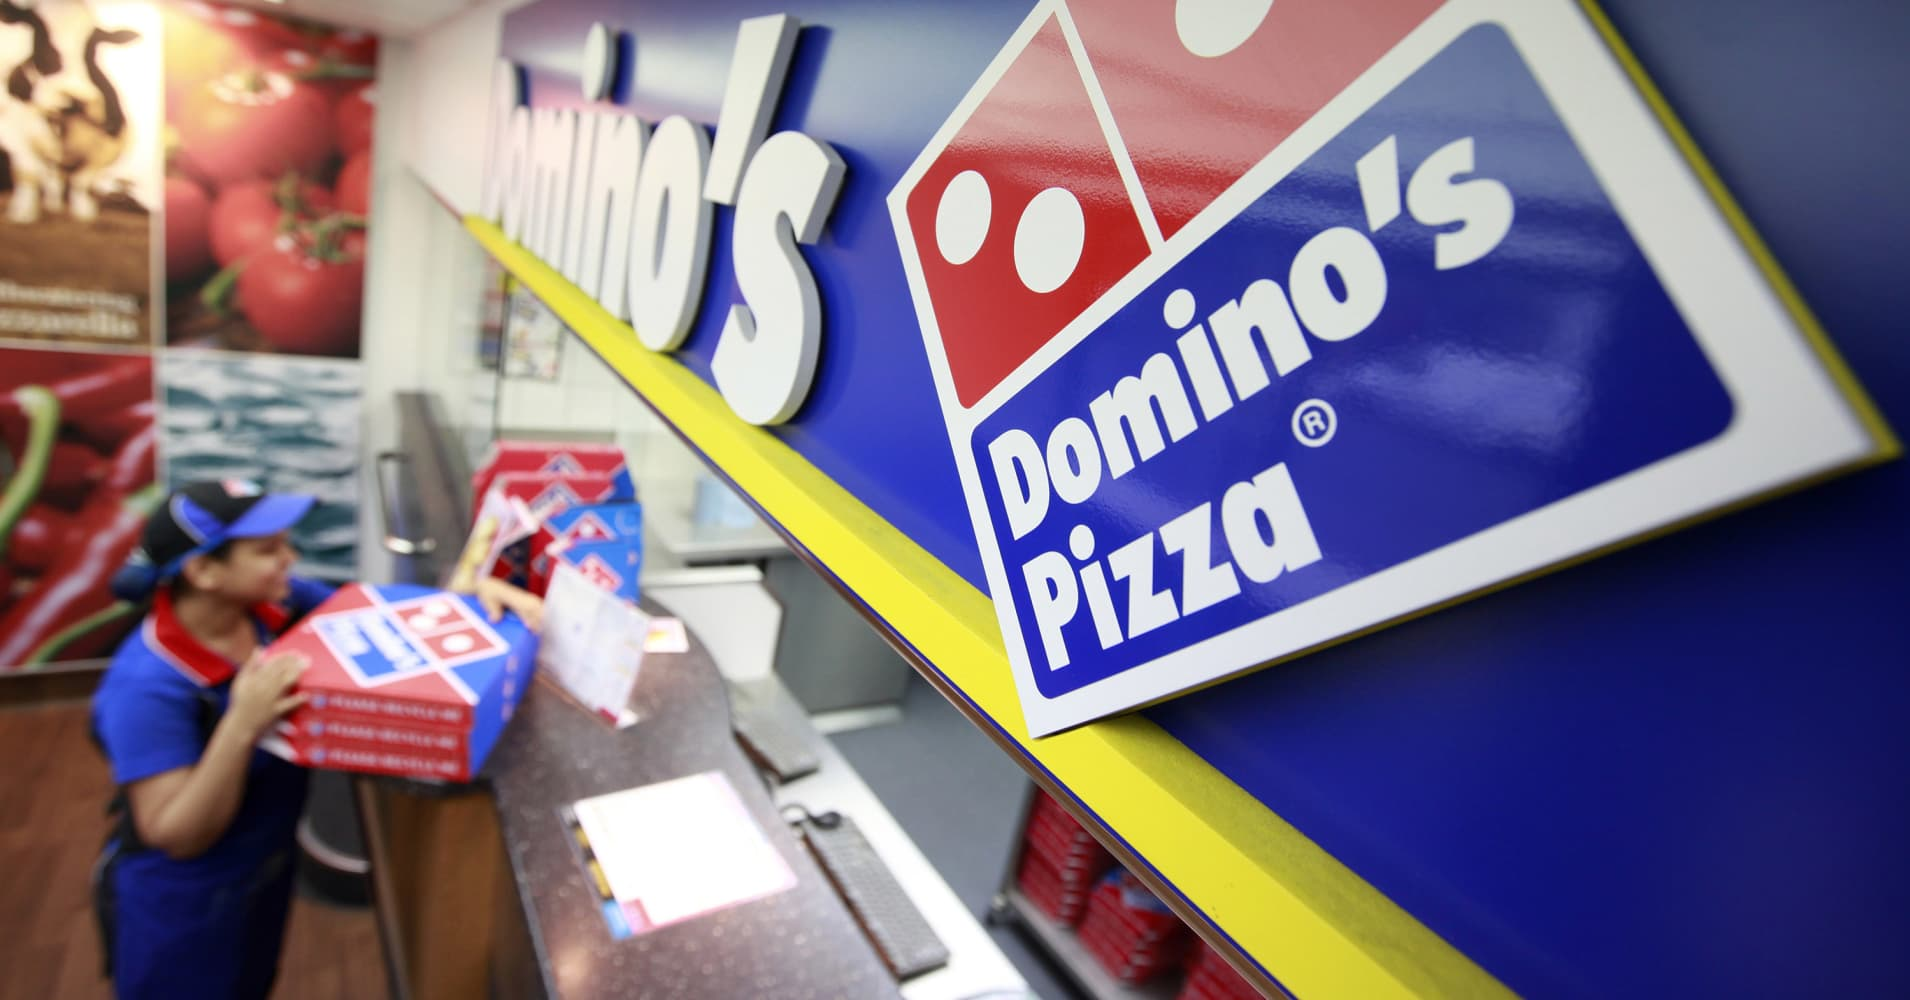 After betting big on digital, Domino's Pizza is eyeing the next big thing in tech